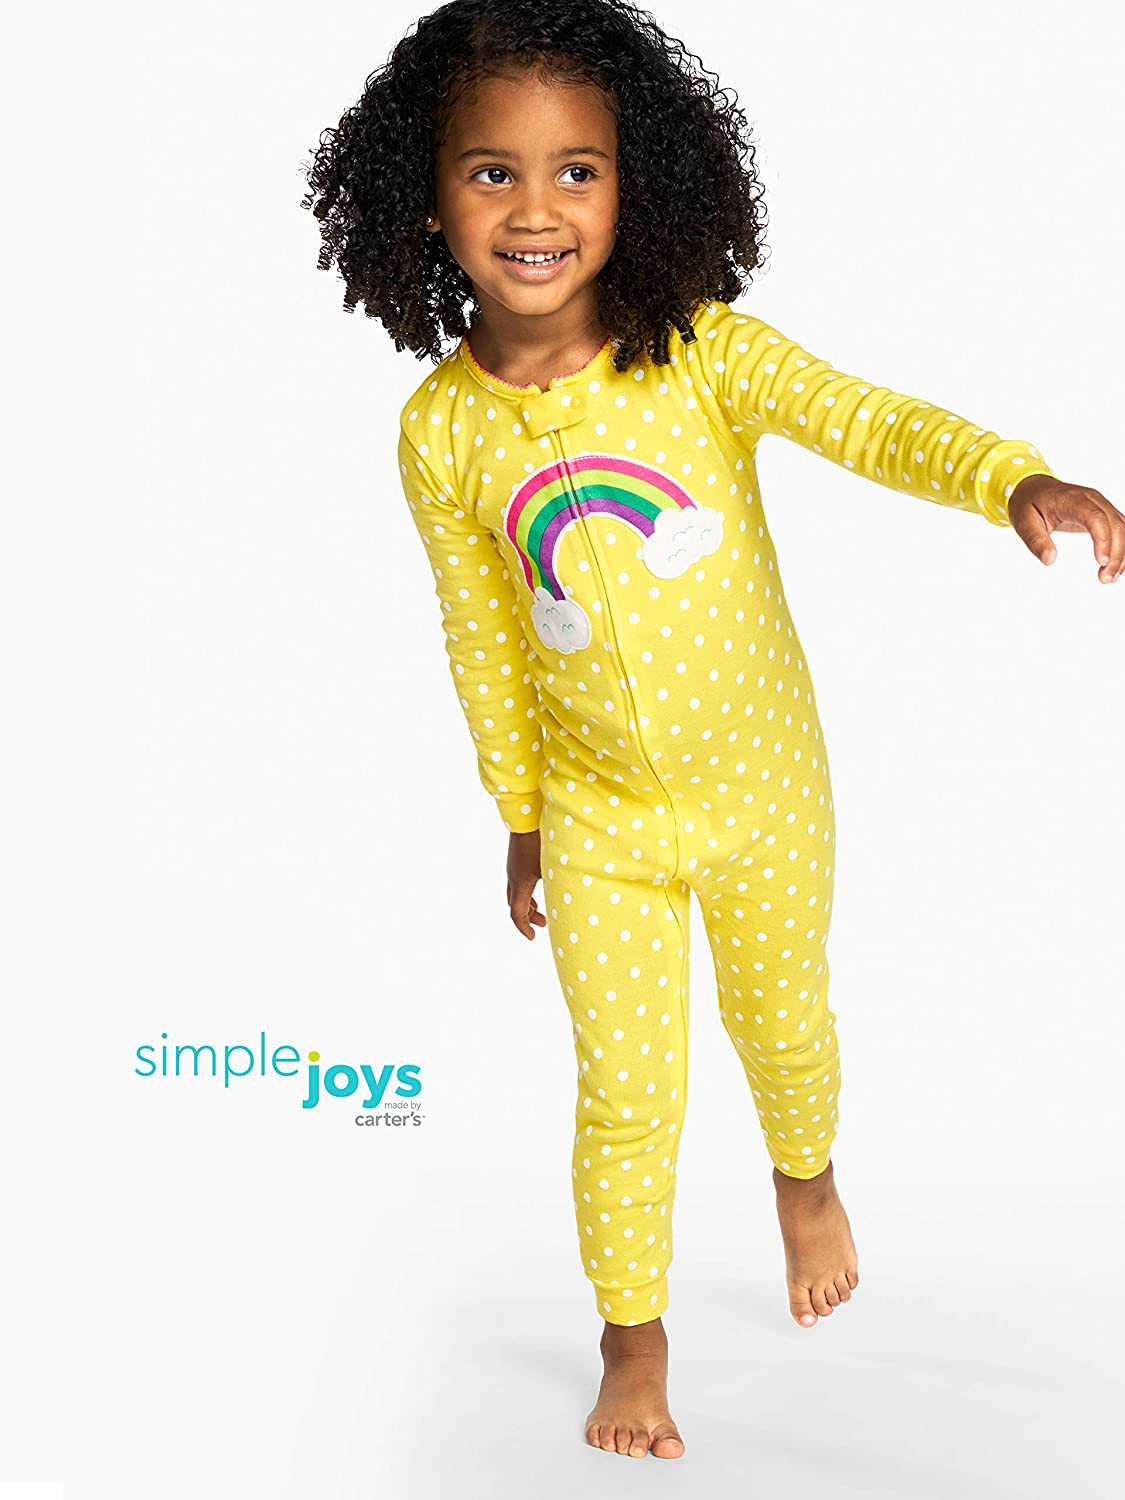 Simple Joys by Carters Baby and Toddler Girls 3-Pack Snug Fit Footless Cotton Pajamas